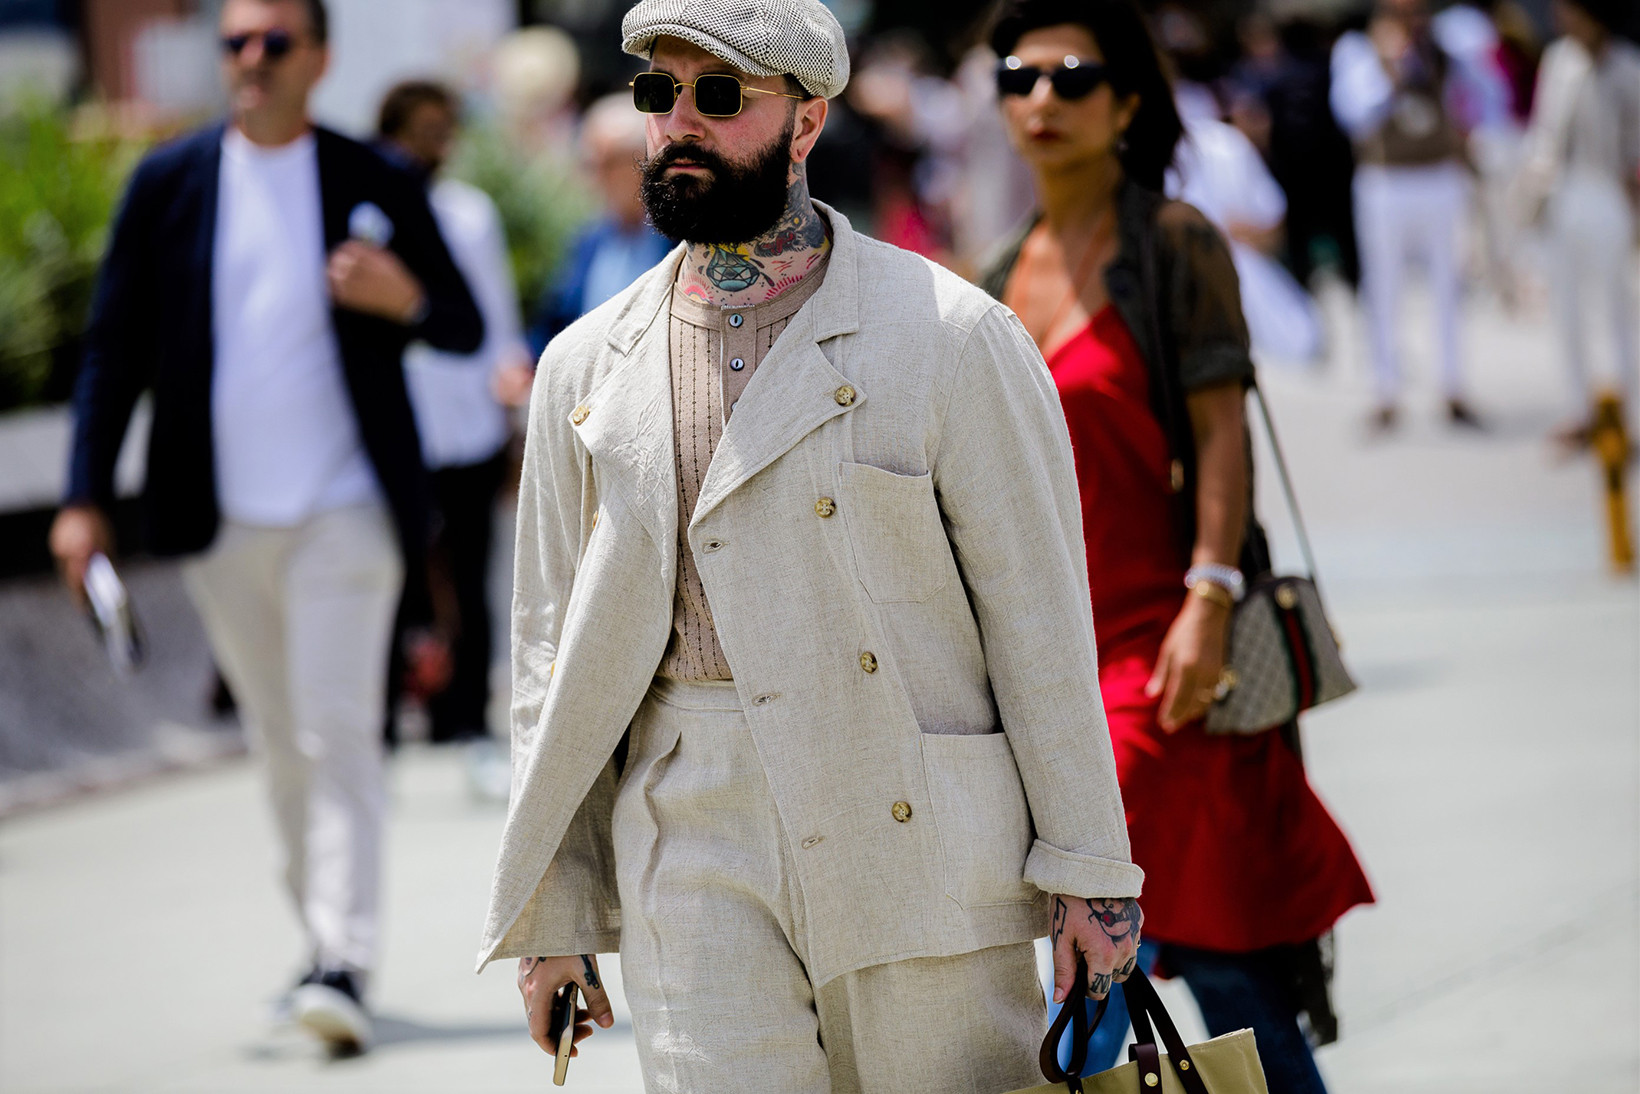 Here\u0027s the Best Street Style From Pitti Uomo 94